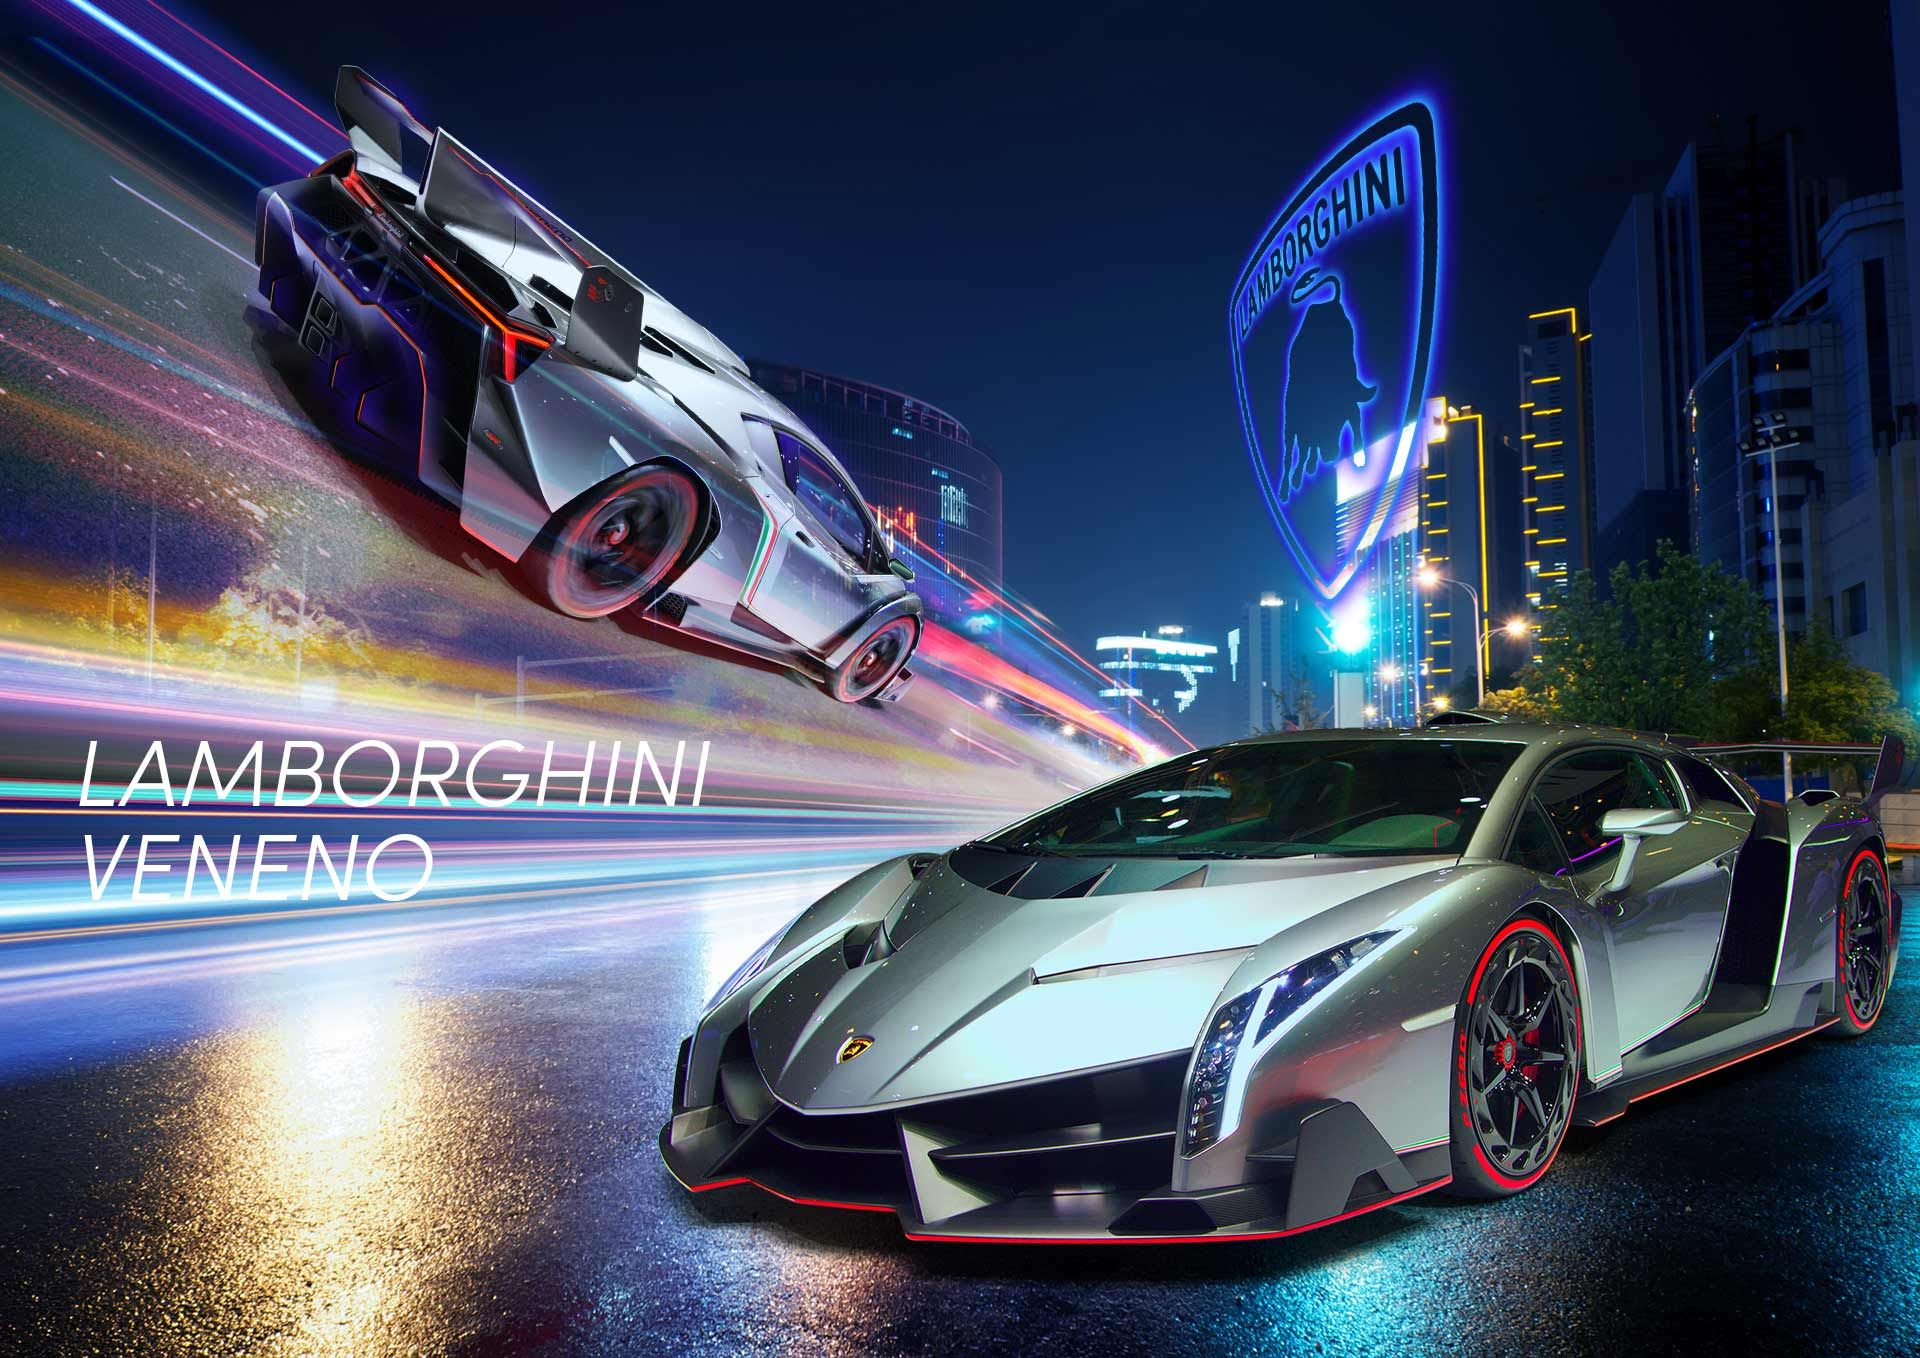 Beautiful Wallpaper Night Lamborghini - deb1e9a59b5d284a6bcbf4bef73b217a  Perfect Image Reference-252175.jpg